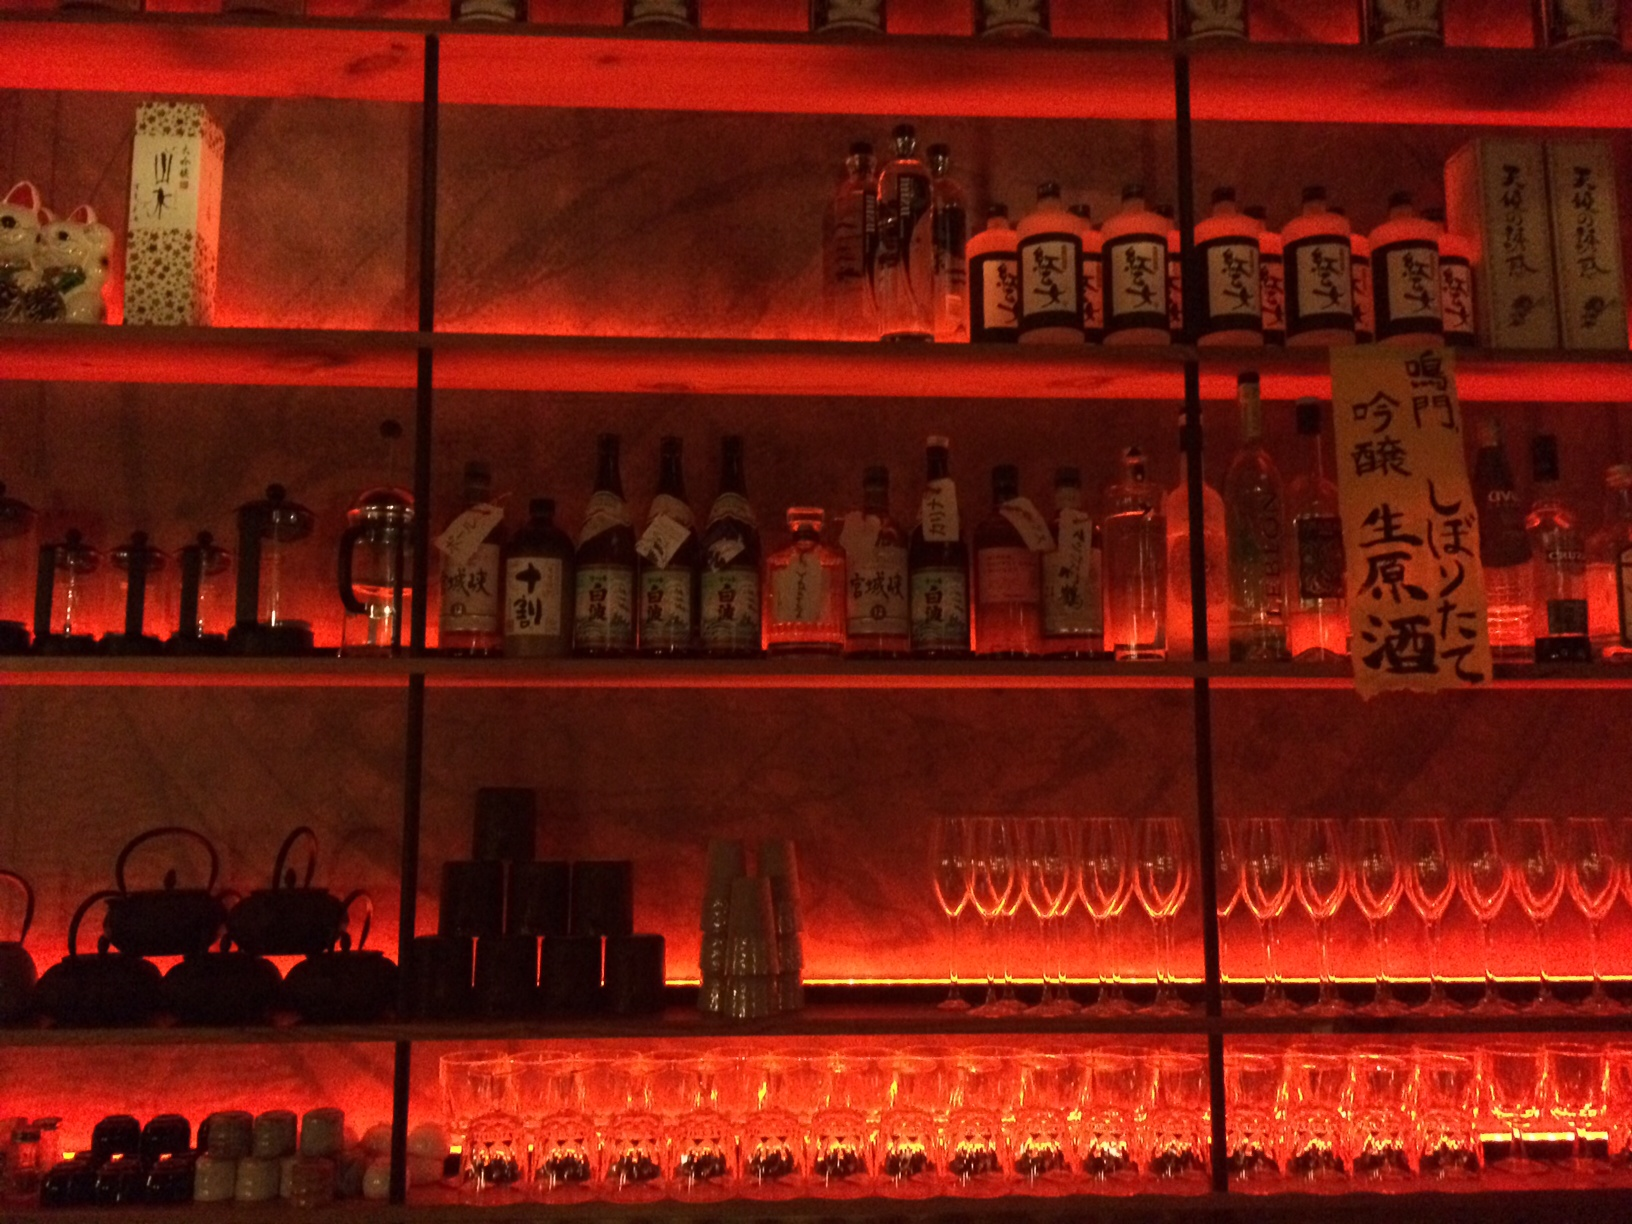 Japanese whiskey and shochu the focus at bar's new bottle keep program